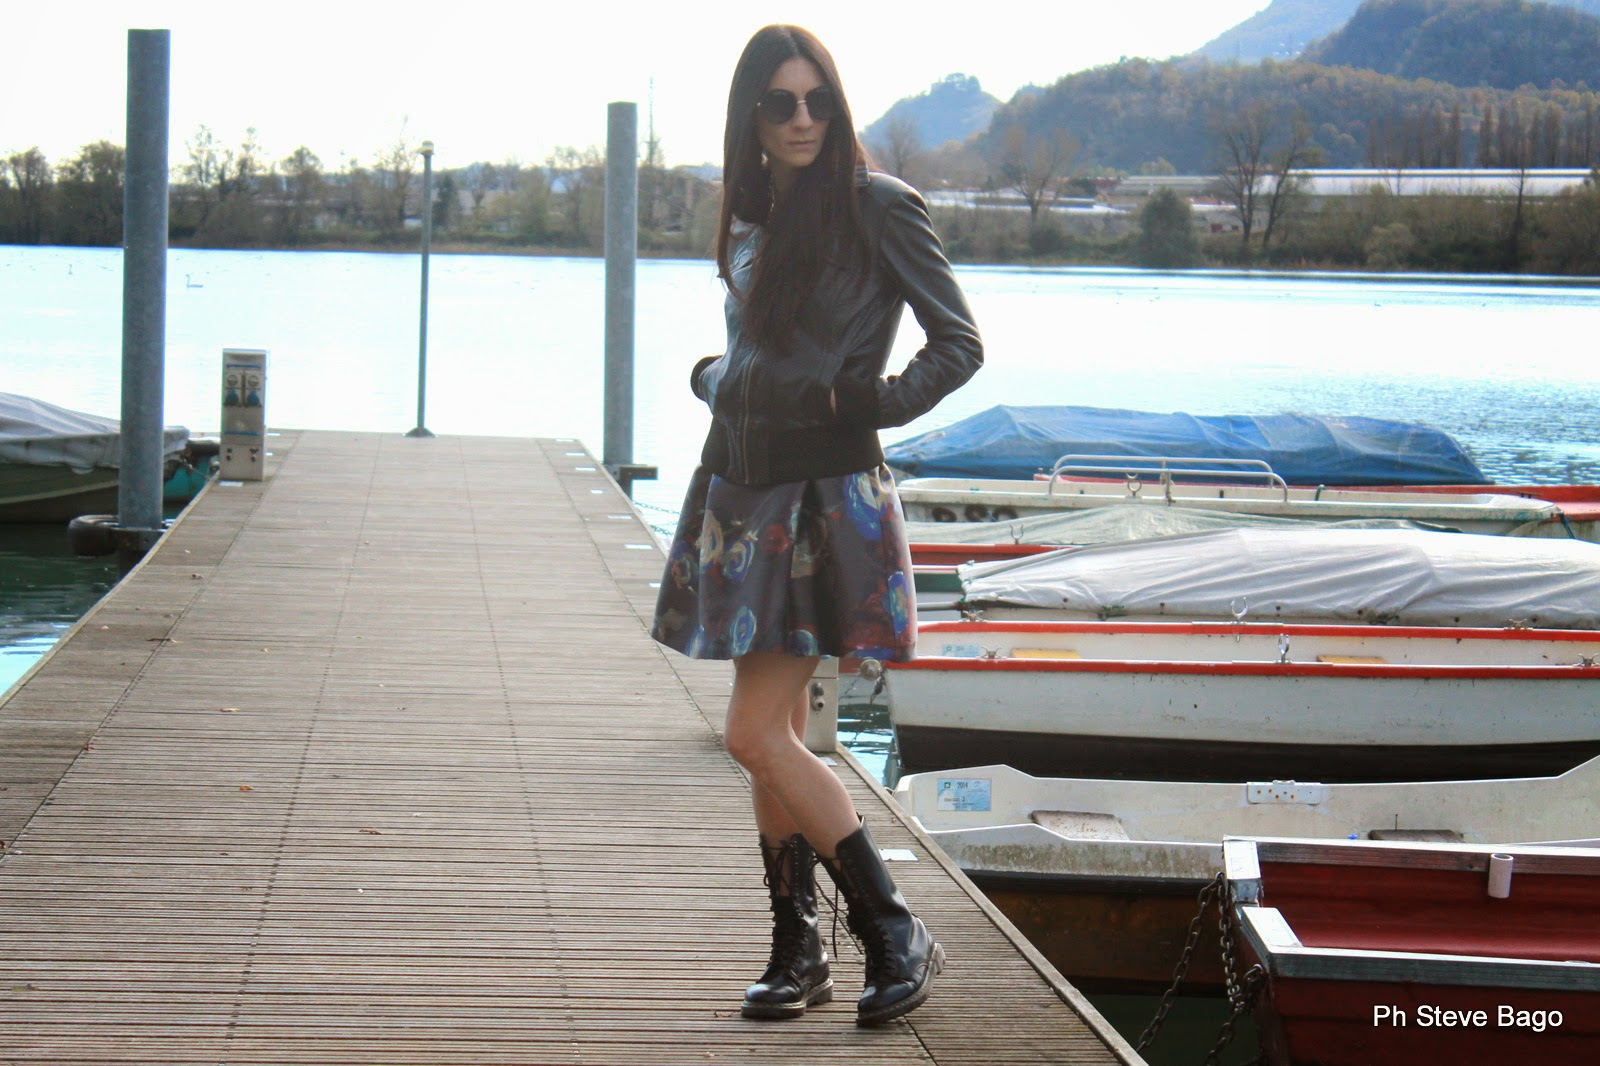 themorasmoothie, dress, fashion, fashionblog, fashionblogger, blogger, fblog, outfit, look, Dr. Martens, shopping, shoppingonline, italianblogger, bloggeritaliana, italiafashionblogger, model, girl, me, fashionable, outfitoftheday, lookoftheday, ootd, DIY, DIY necklace